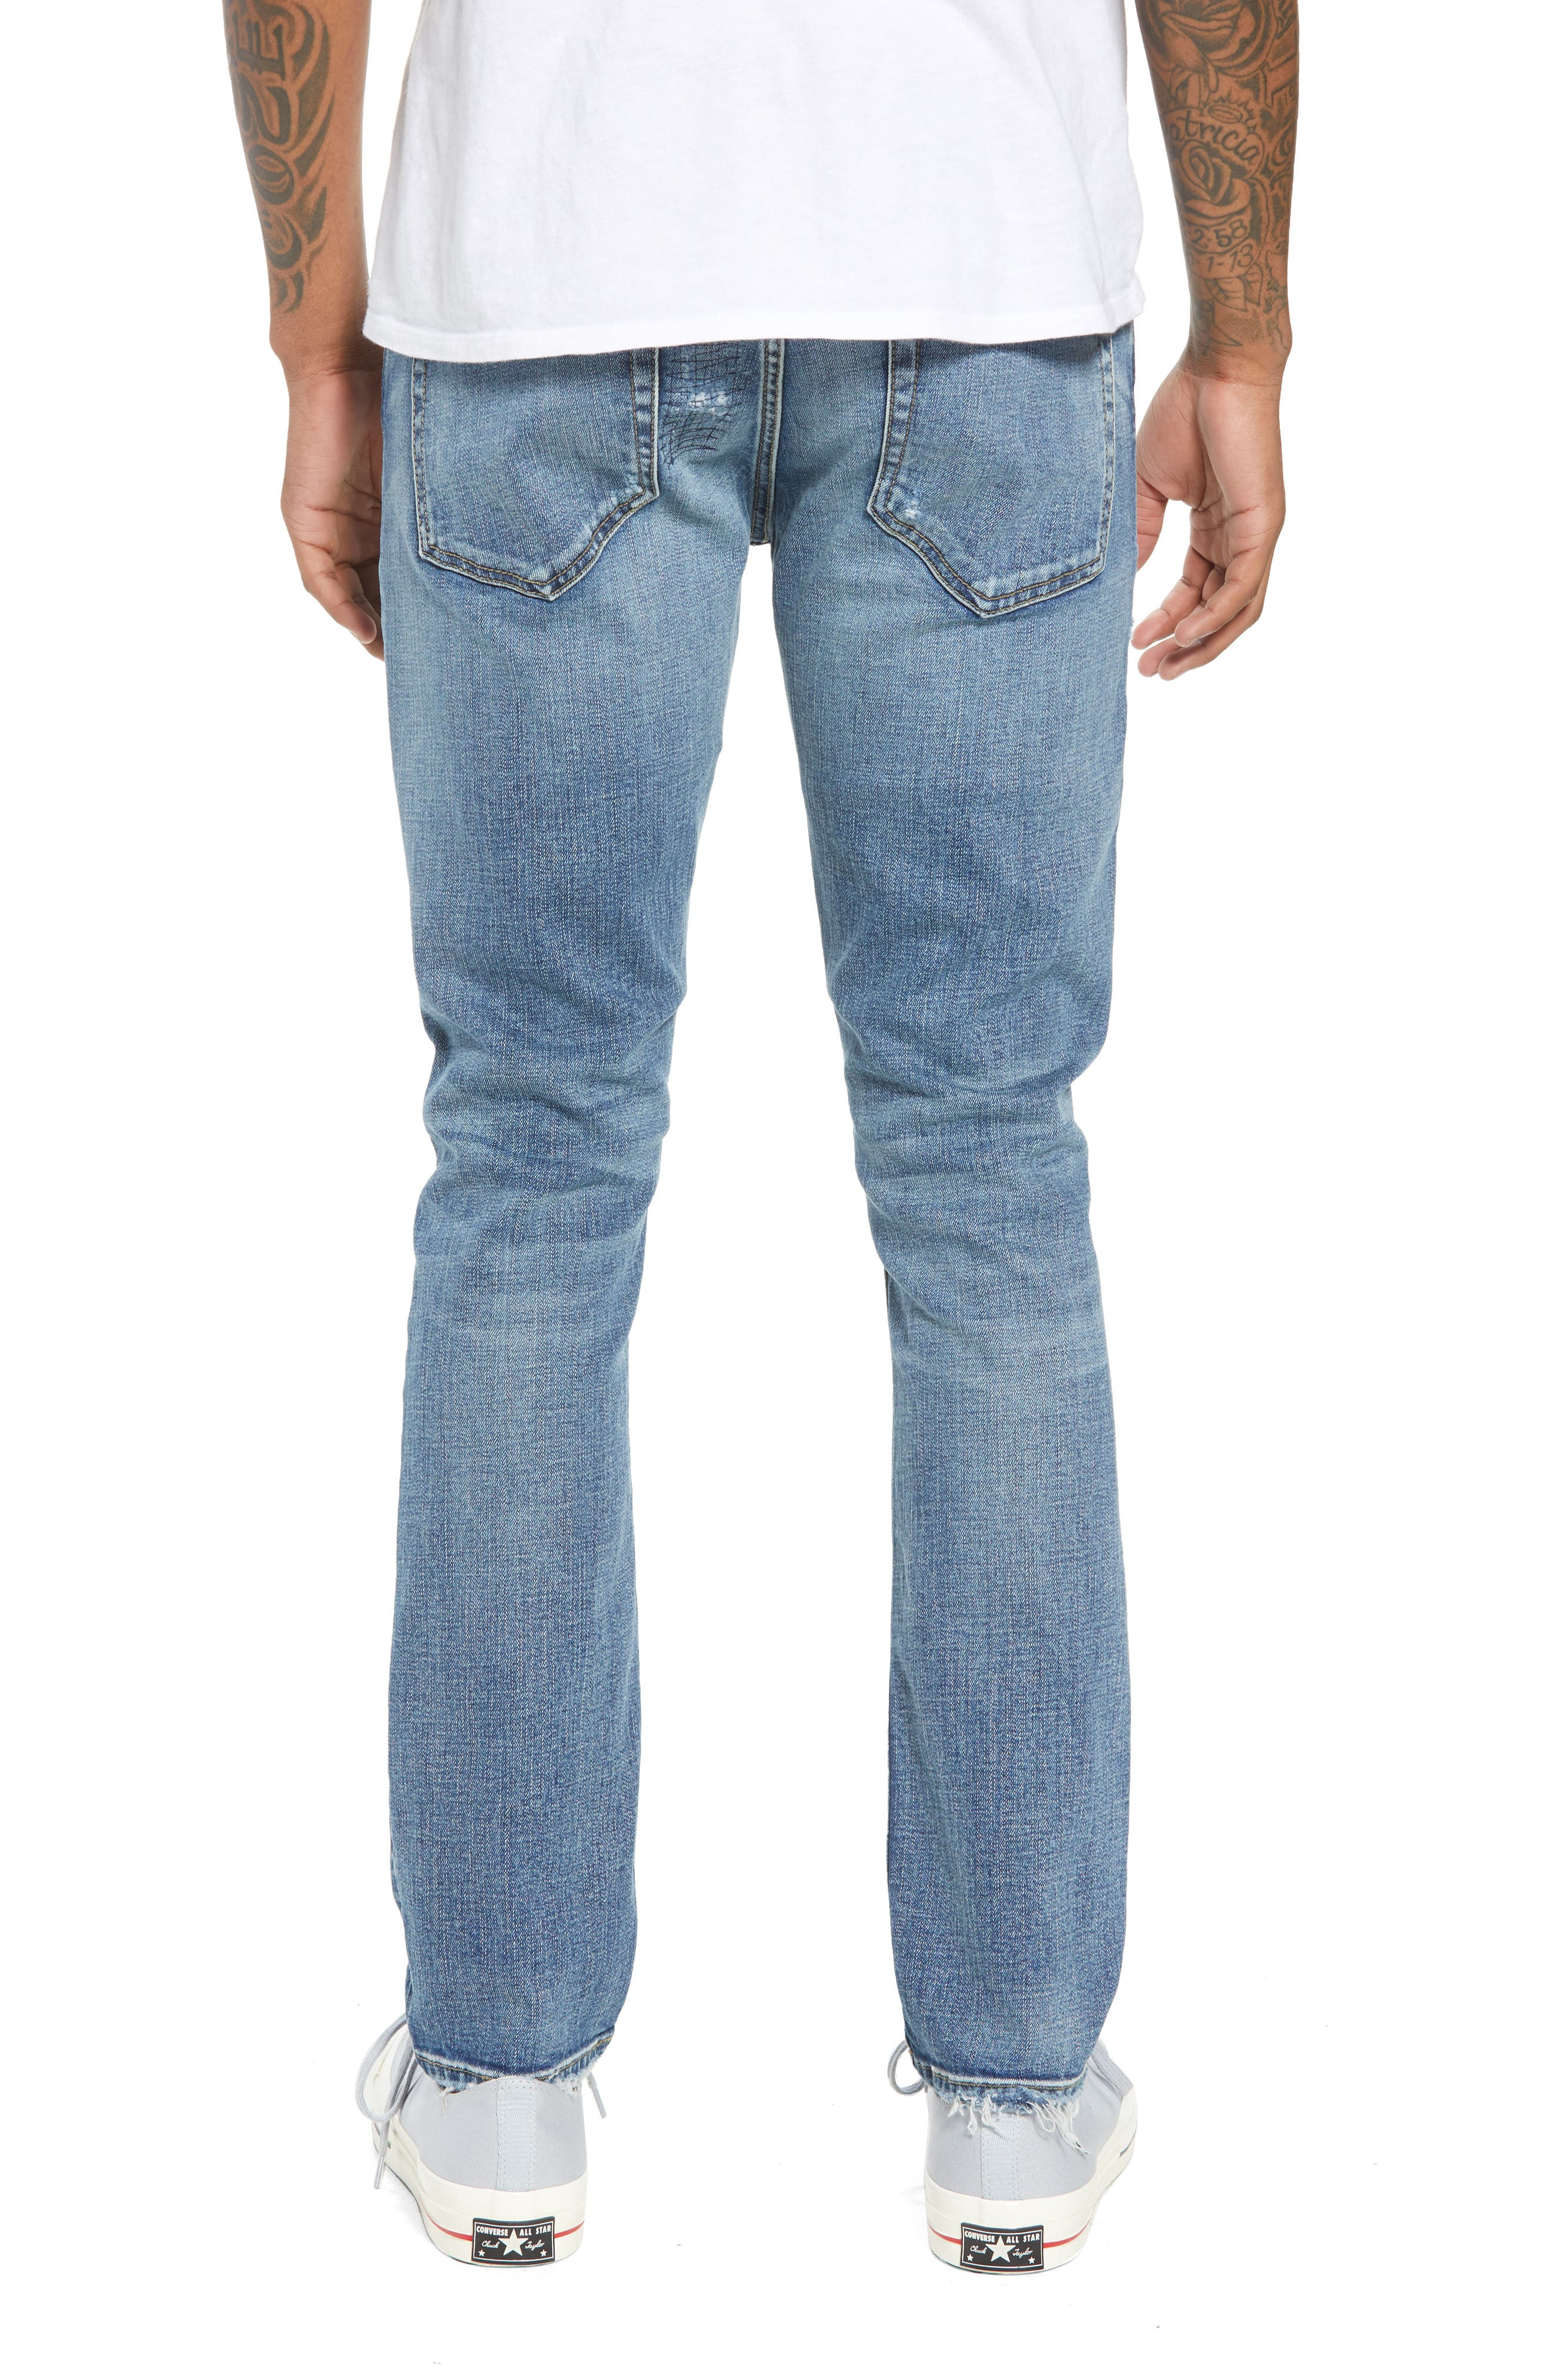 Wooster Slim Fit Jeans,                             Alternate thumbnail 2, color,                             LION NIGHT